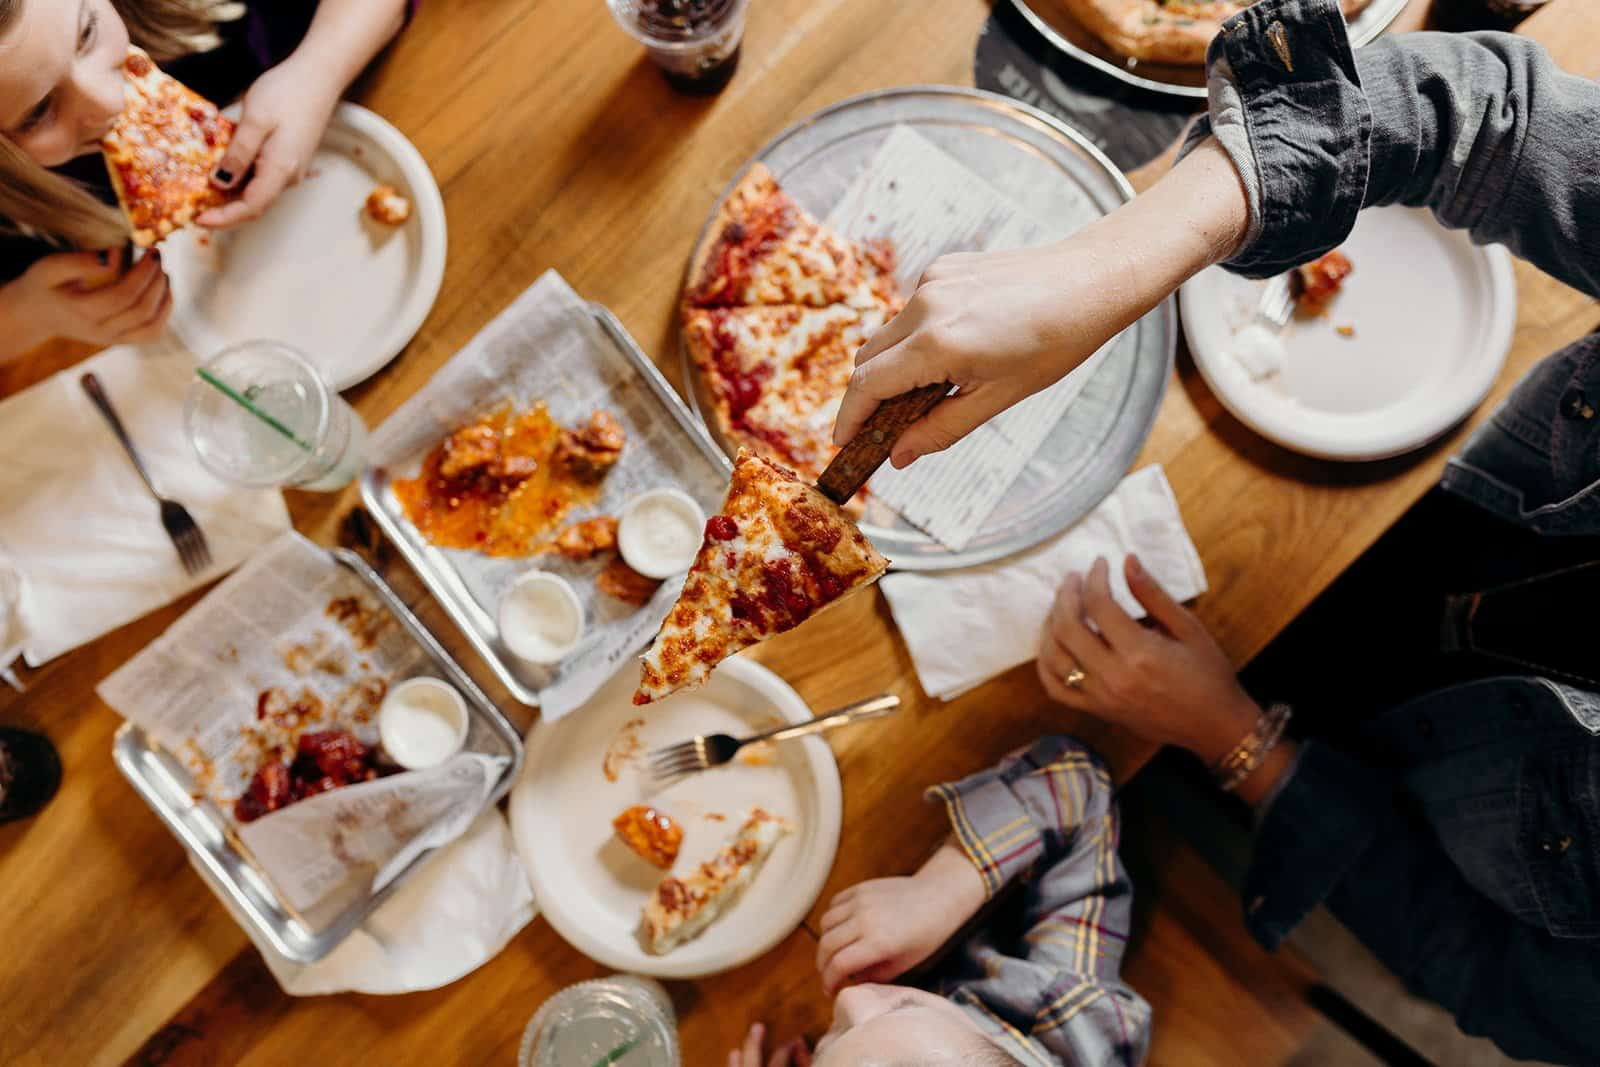 Park Street Pizza / Commercial Shoot 328